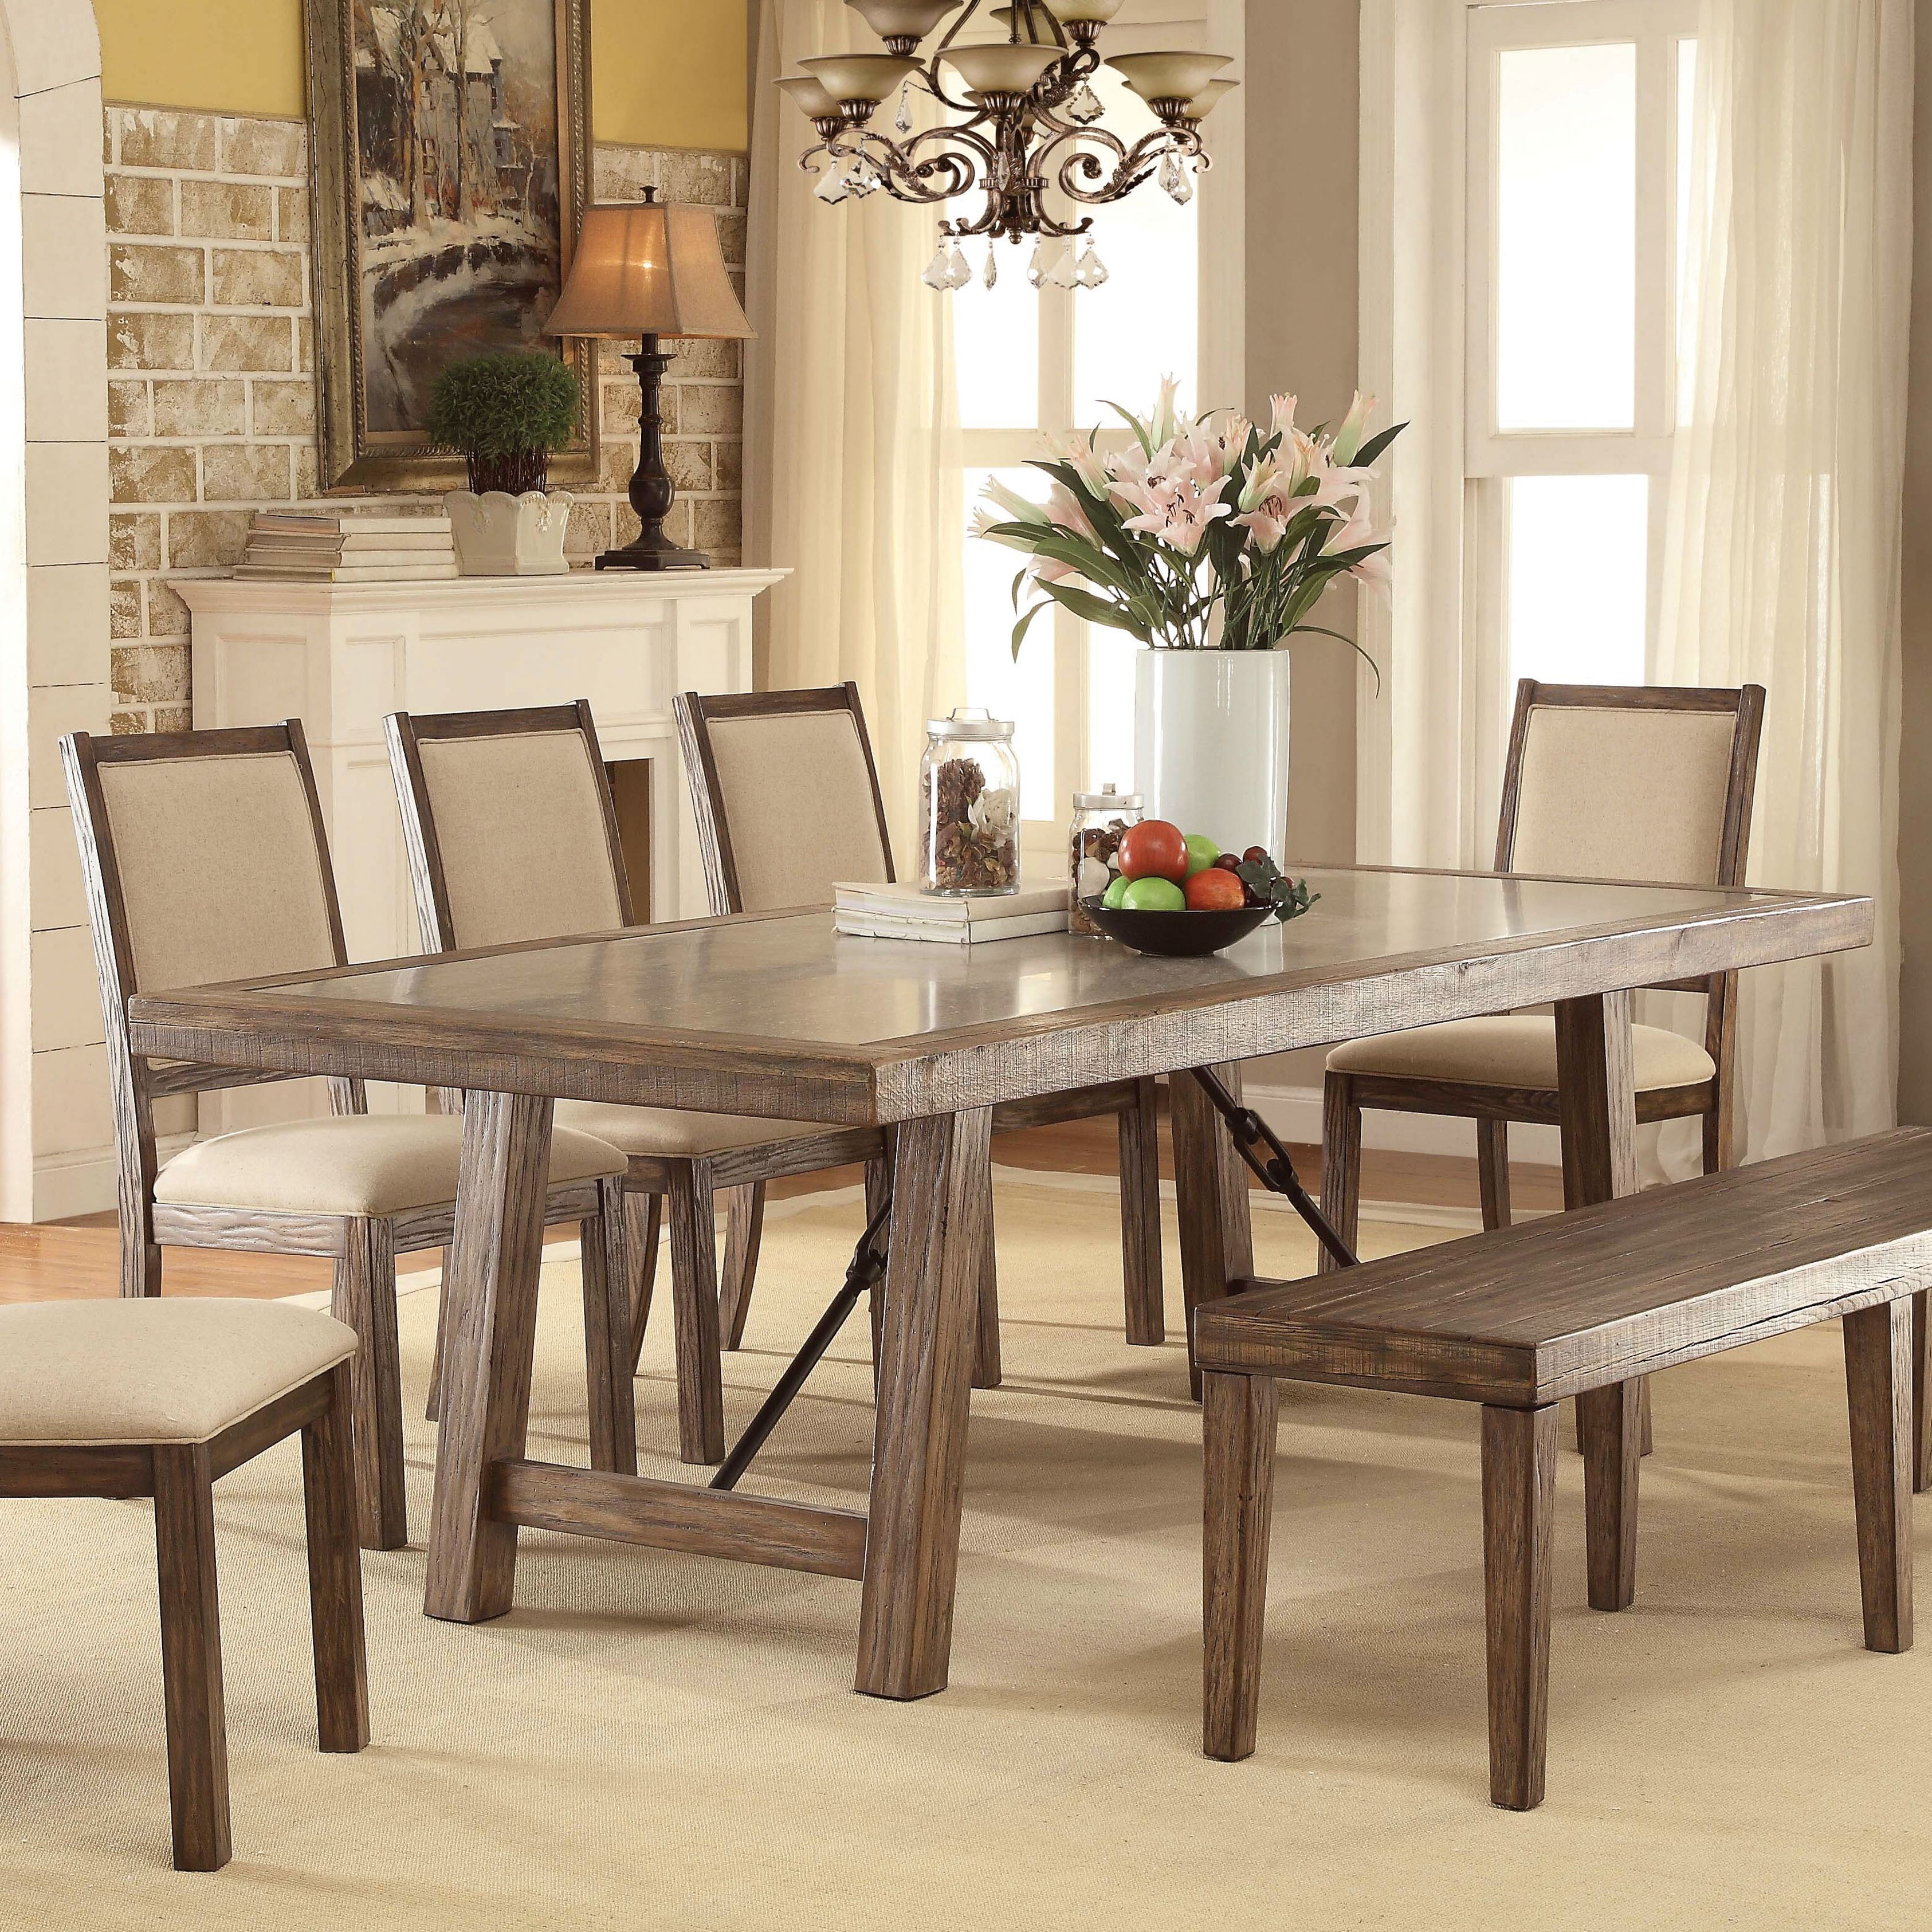 Add style and country charm to your dining area with this weathered